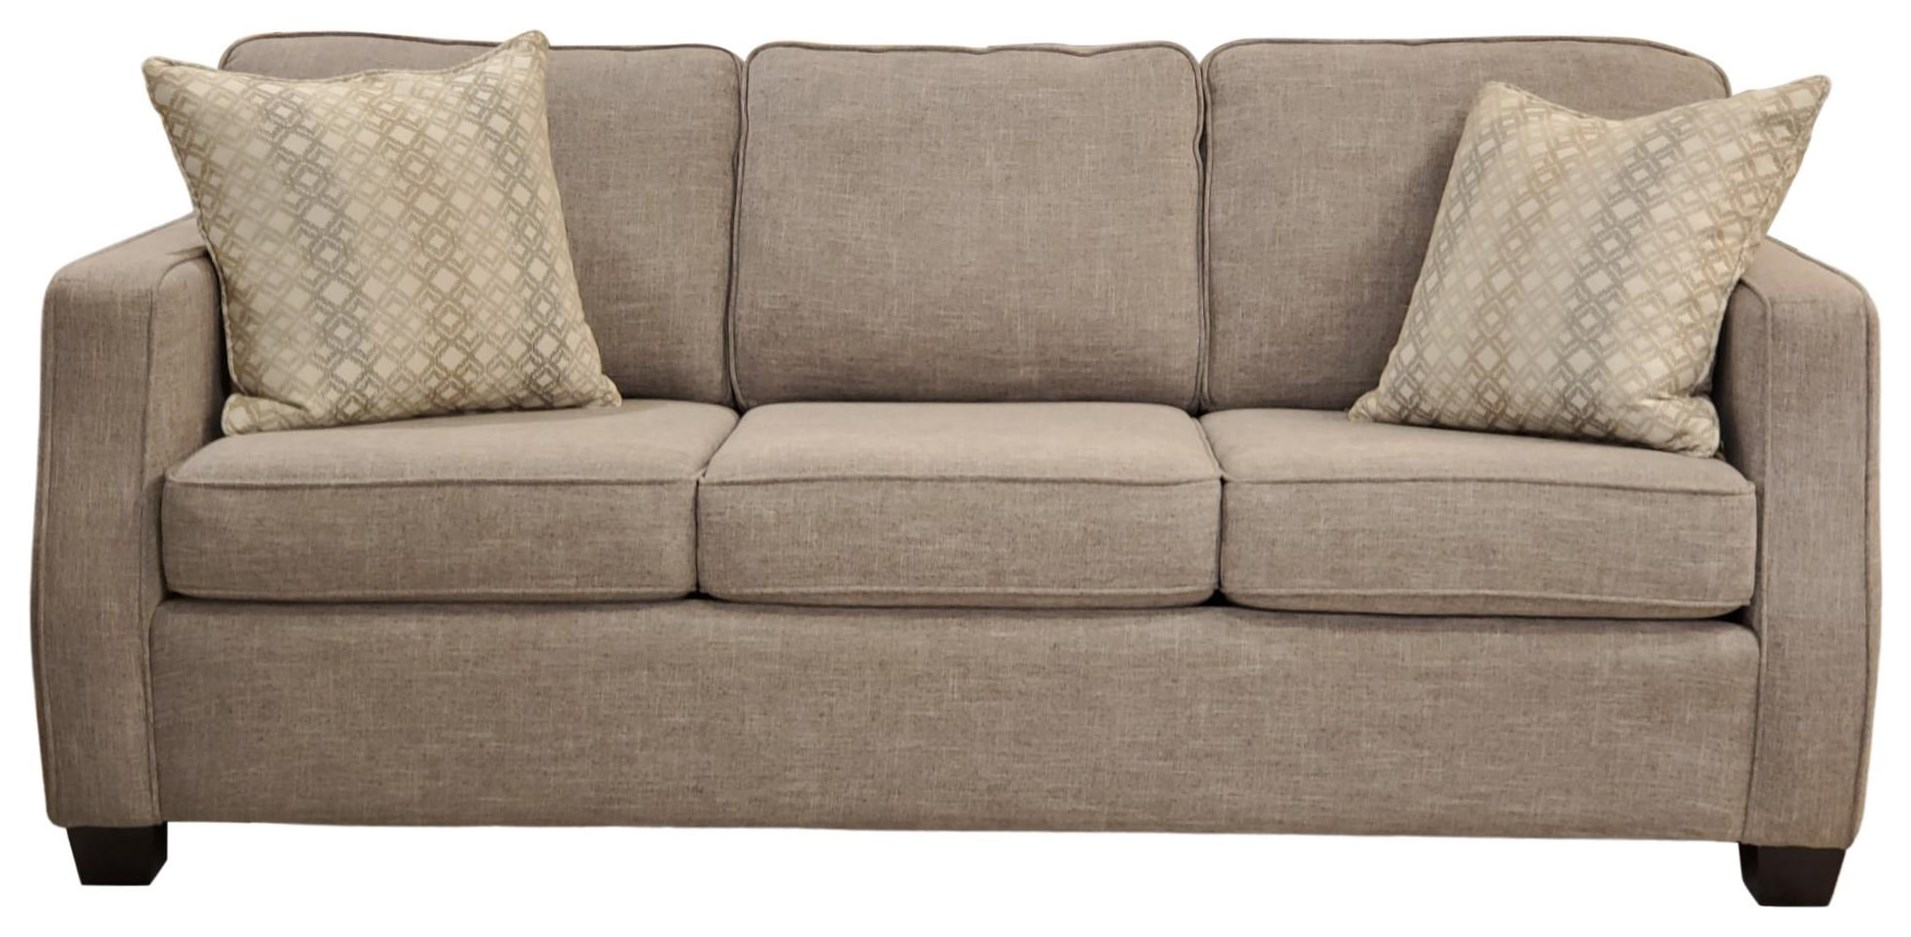 2570 Sofa by Decor-Rest at Upper Room Home Furnishings